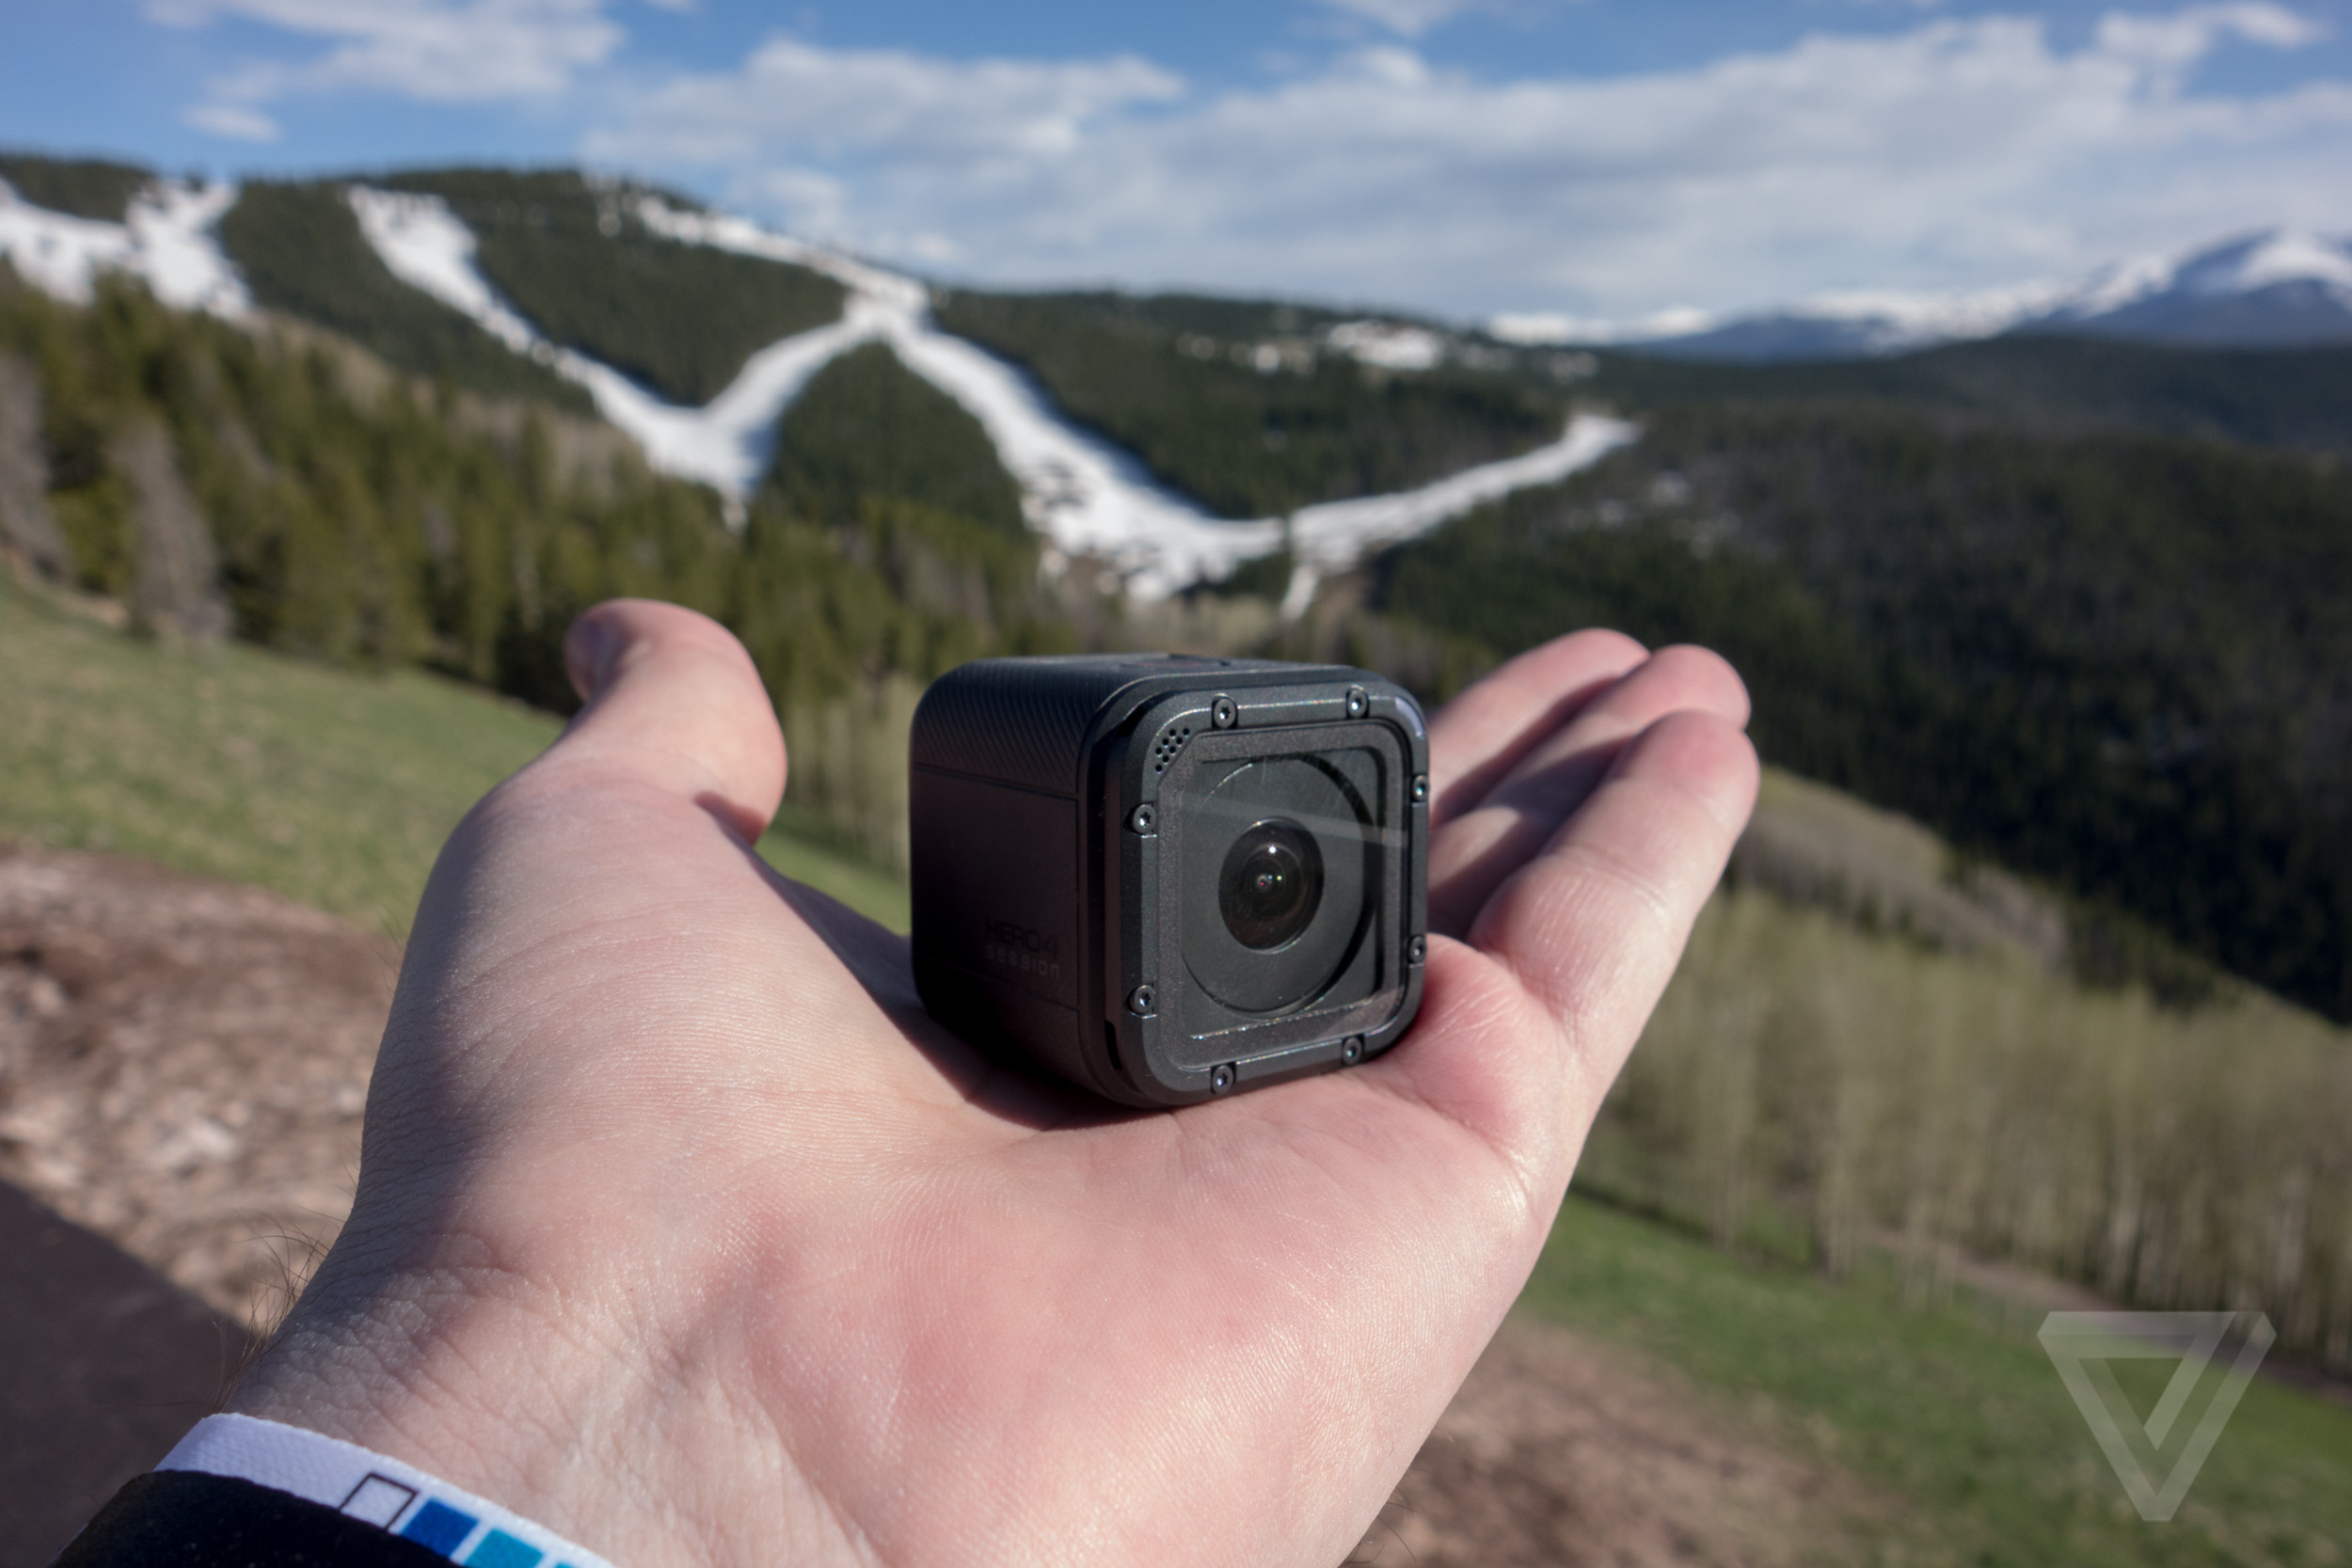 Gopro S Hero 4 Session Is Its Smallest Camera Ever The Verge